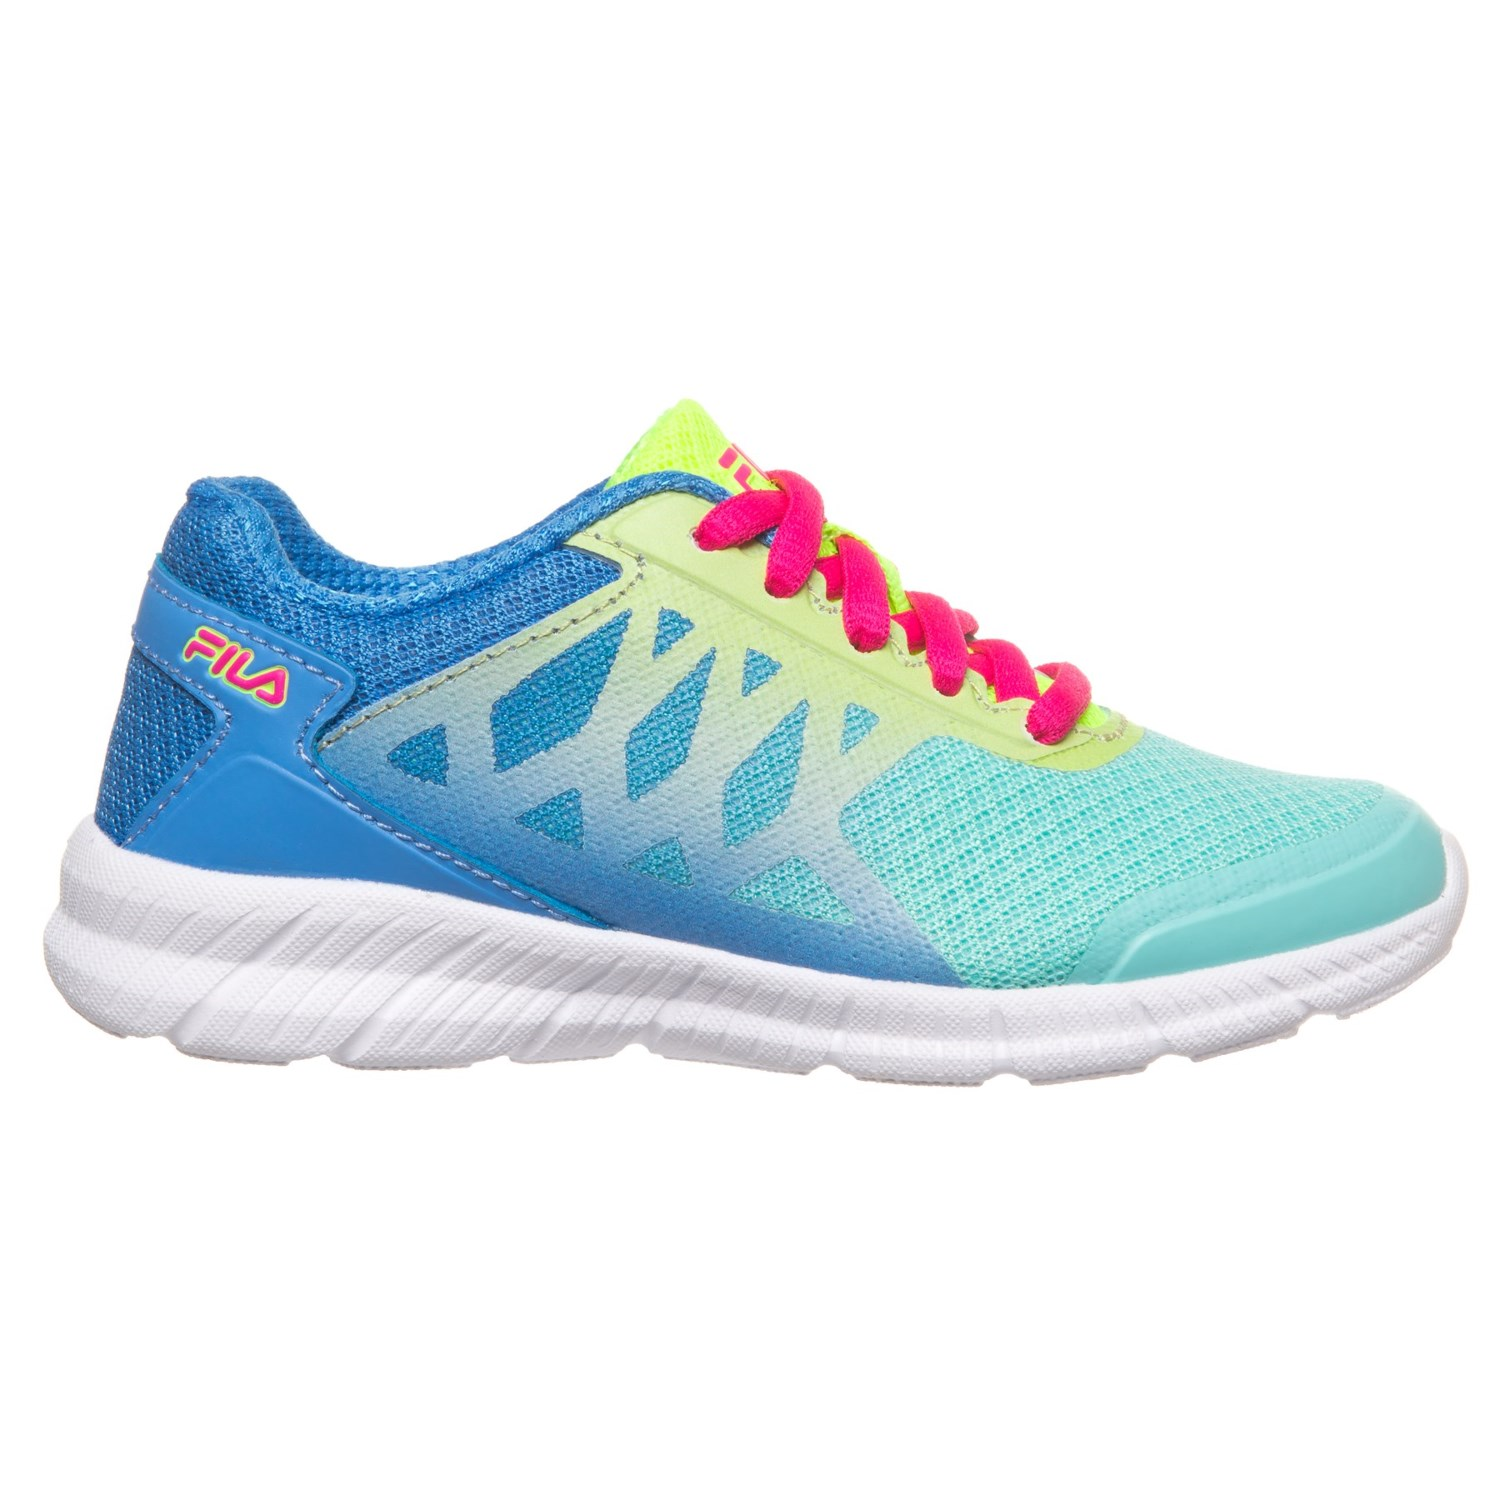 Fila Faction 3 Running Shoes For Girls Save